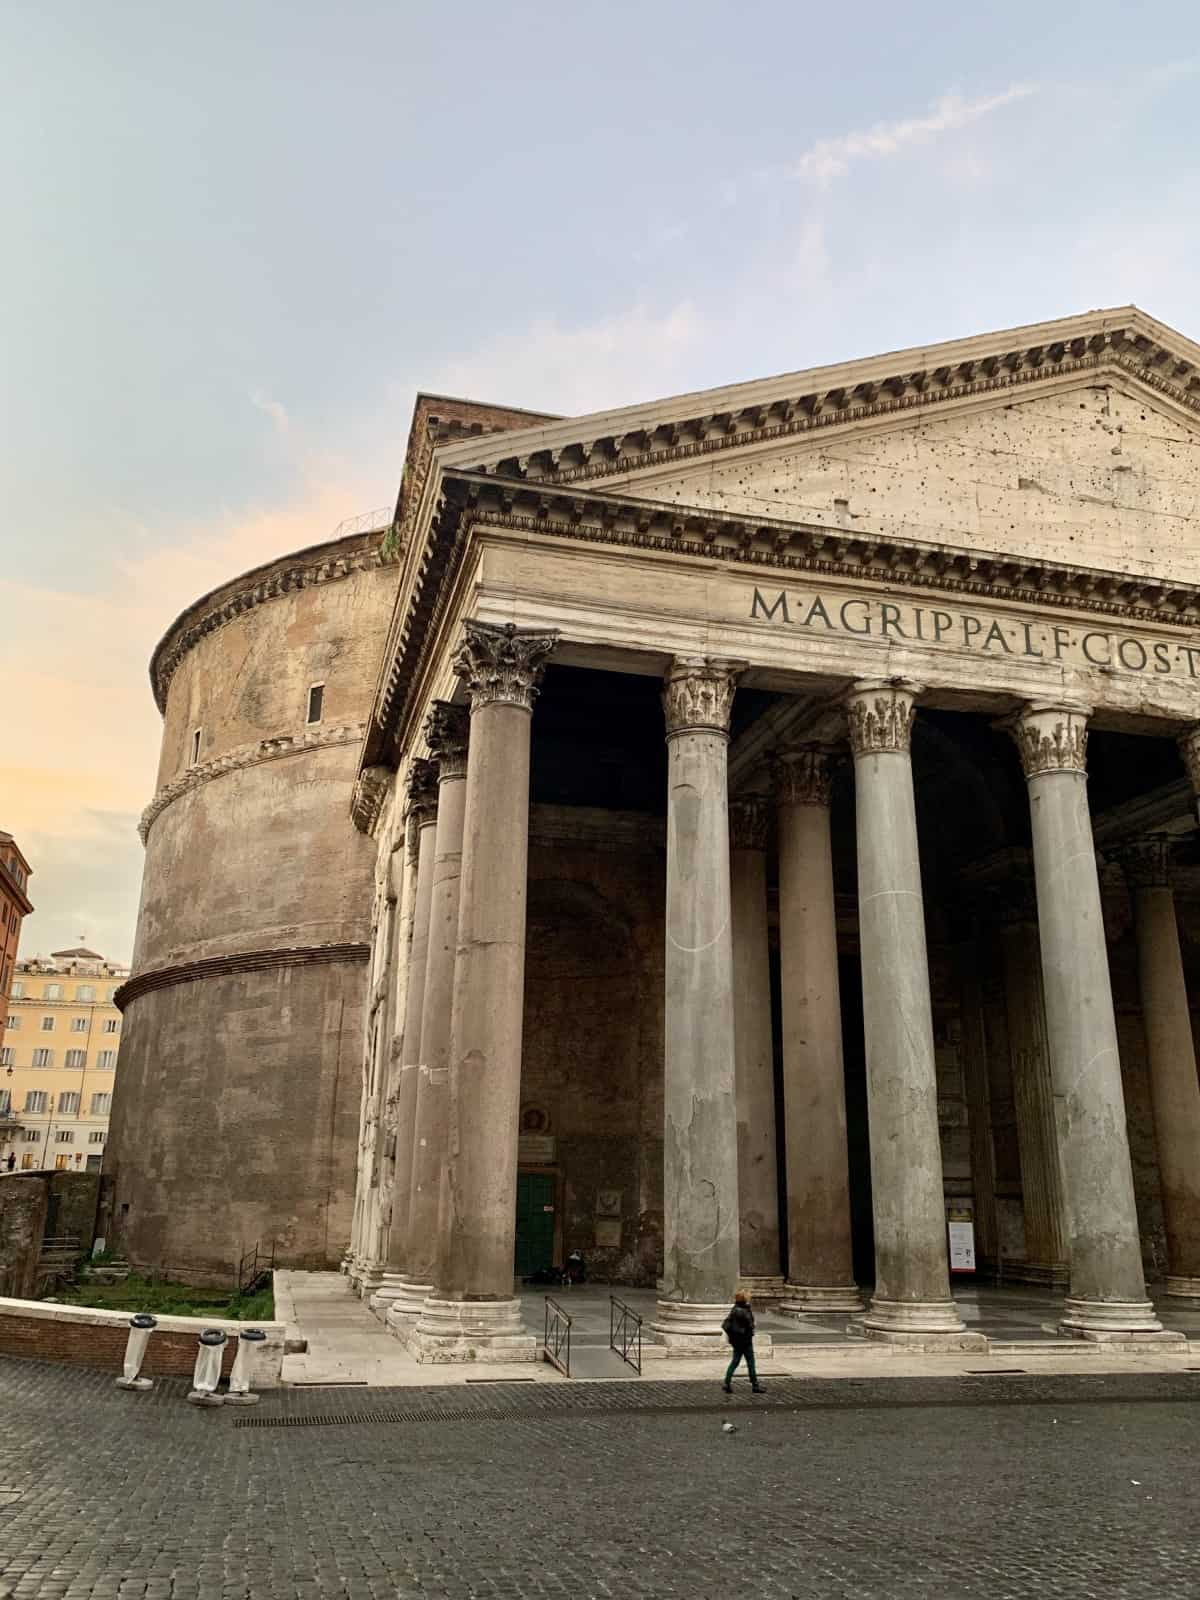 A First-Timer's Guide to Rome | A super detailed travel guide to the Eternal City, what to do in Rome whether you have one day or a week...things to do in Rome, what to see and what to skip, where to eat, sunset and sunrise Rome ideas, and more. Italy travel tips, Rome itinerary ideas, and Rome for solo travelers. Should you visit the Colosseum, Vatican Museum, Spanish Steps, & more! #rome #italy